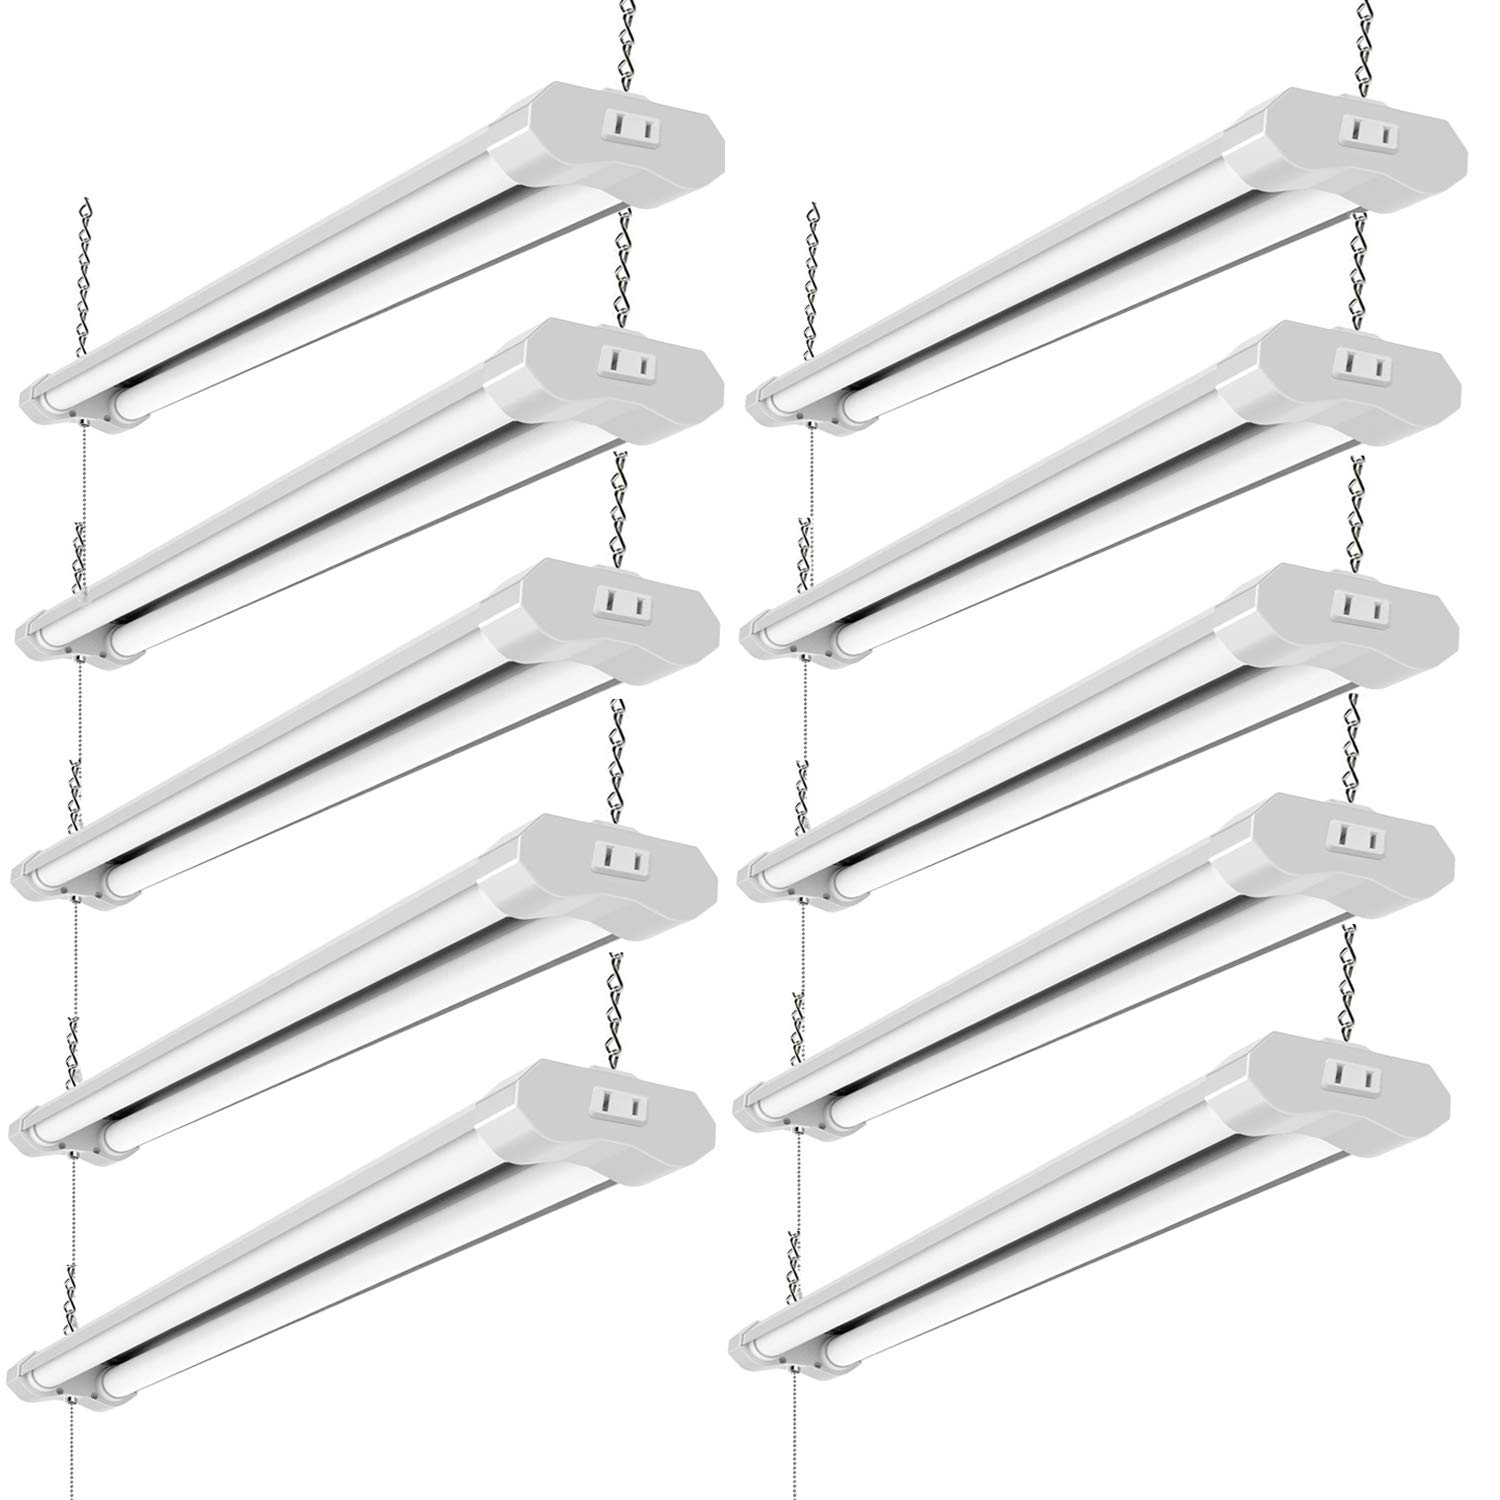 Lzhome(10-Pack) Linkable LED Shop Light for garages,4FT 4500LM,40W 5000K Daylight White, LED Wrapround Light, with Pull Chain (ON/Off),Linear Worklight Fixture with Plug (10 Pack) by lzhome